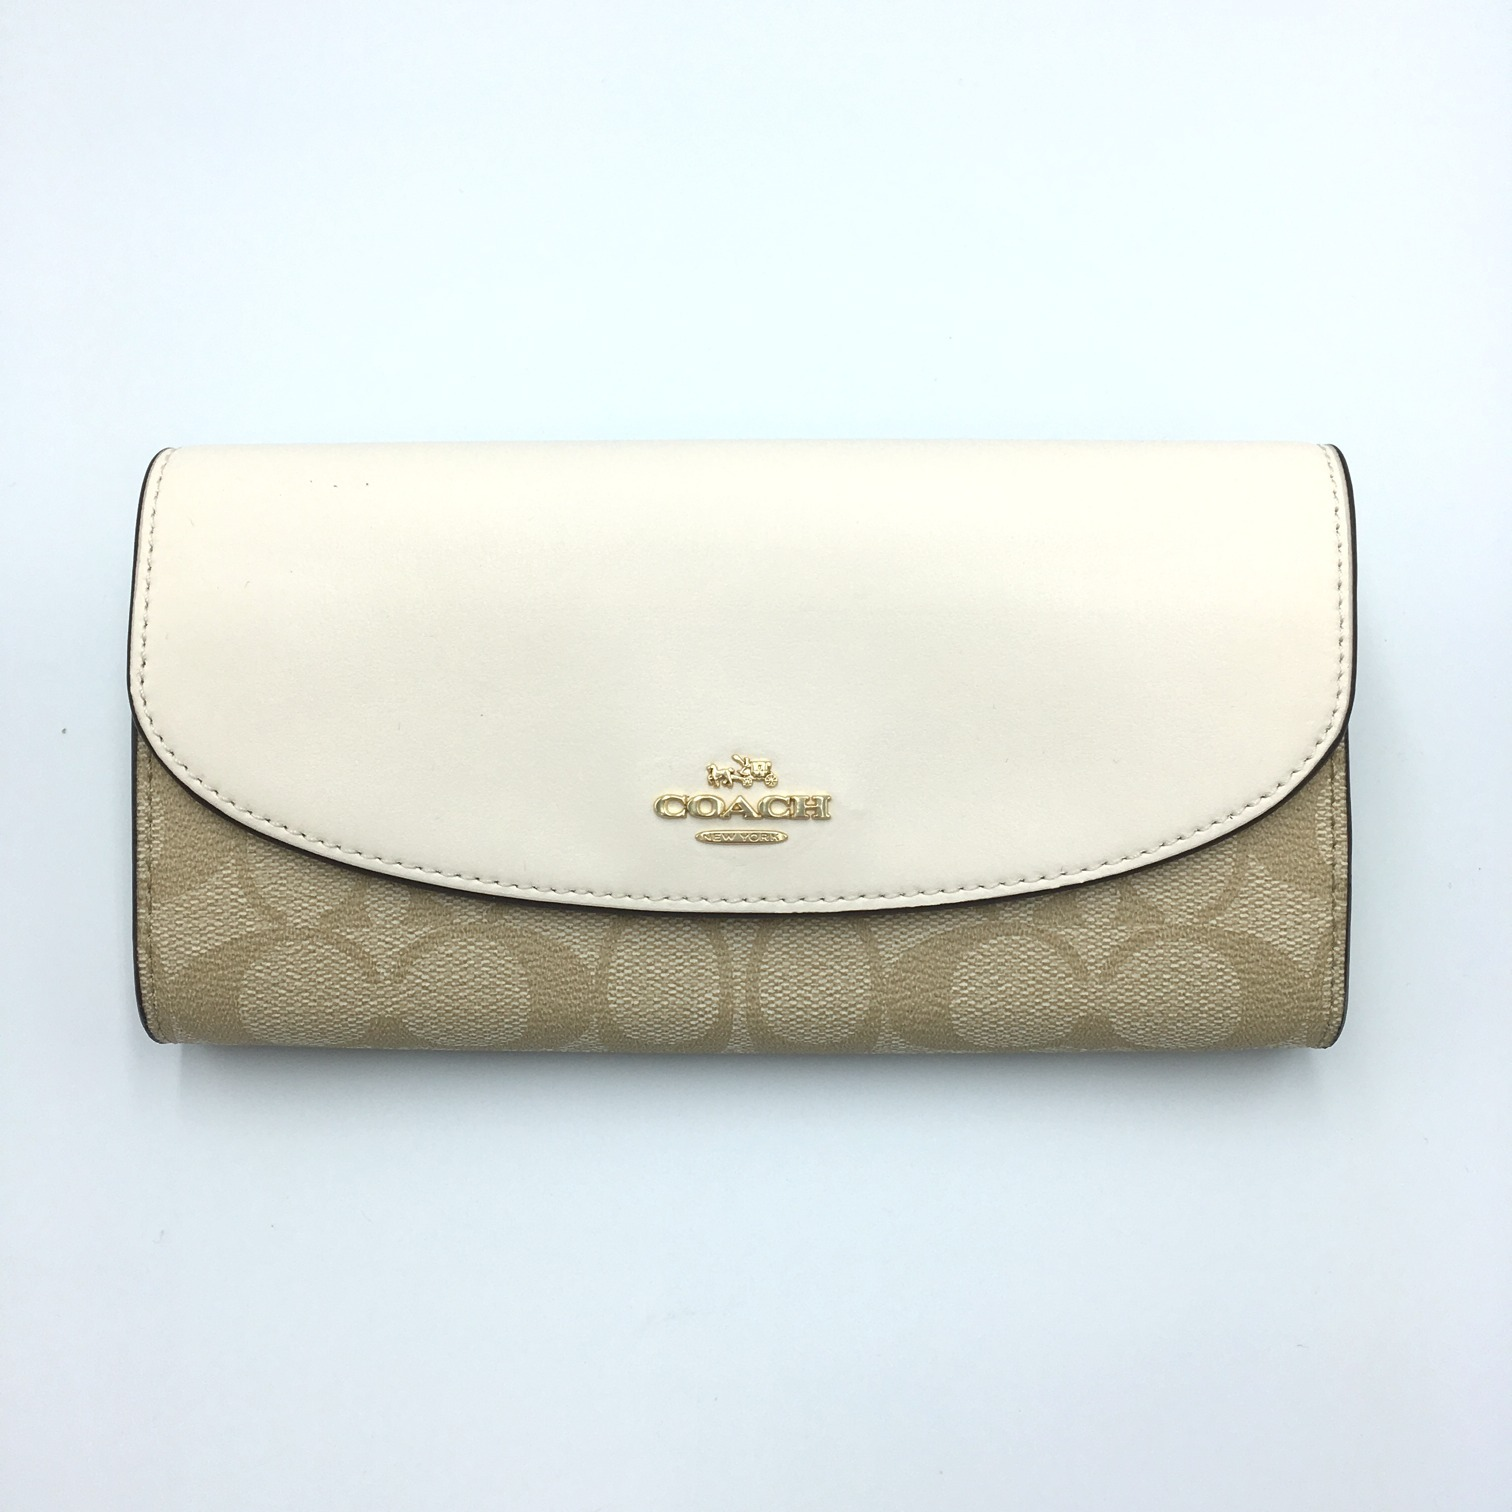 新品【COACH】長財布 (Light Kharki/Chalk)